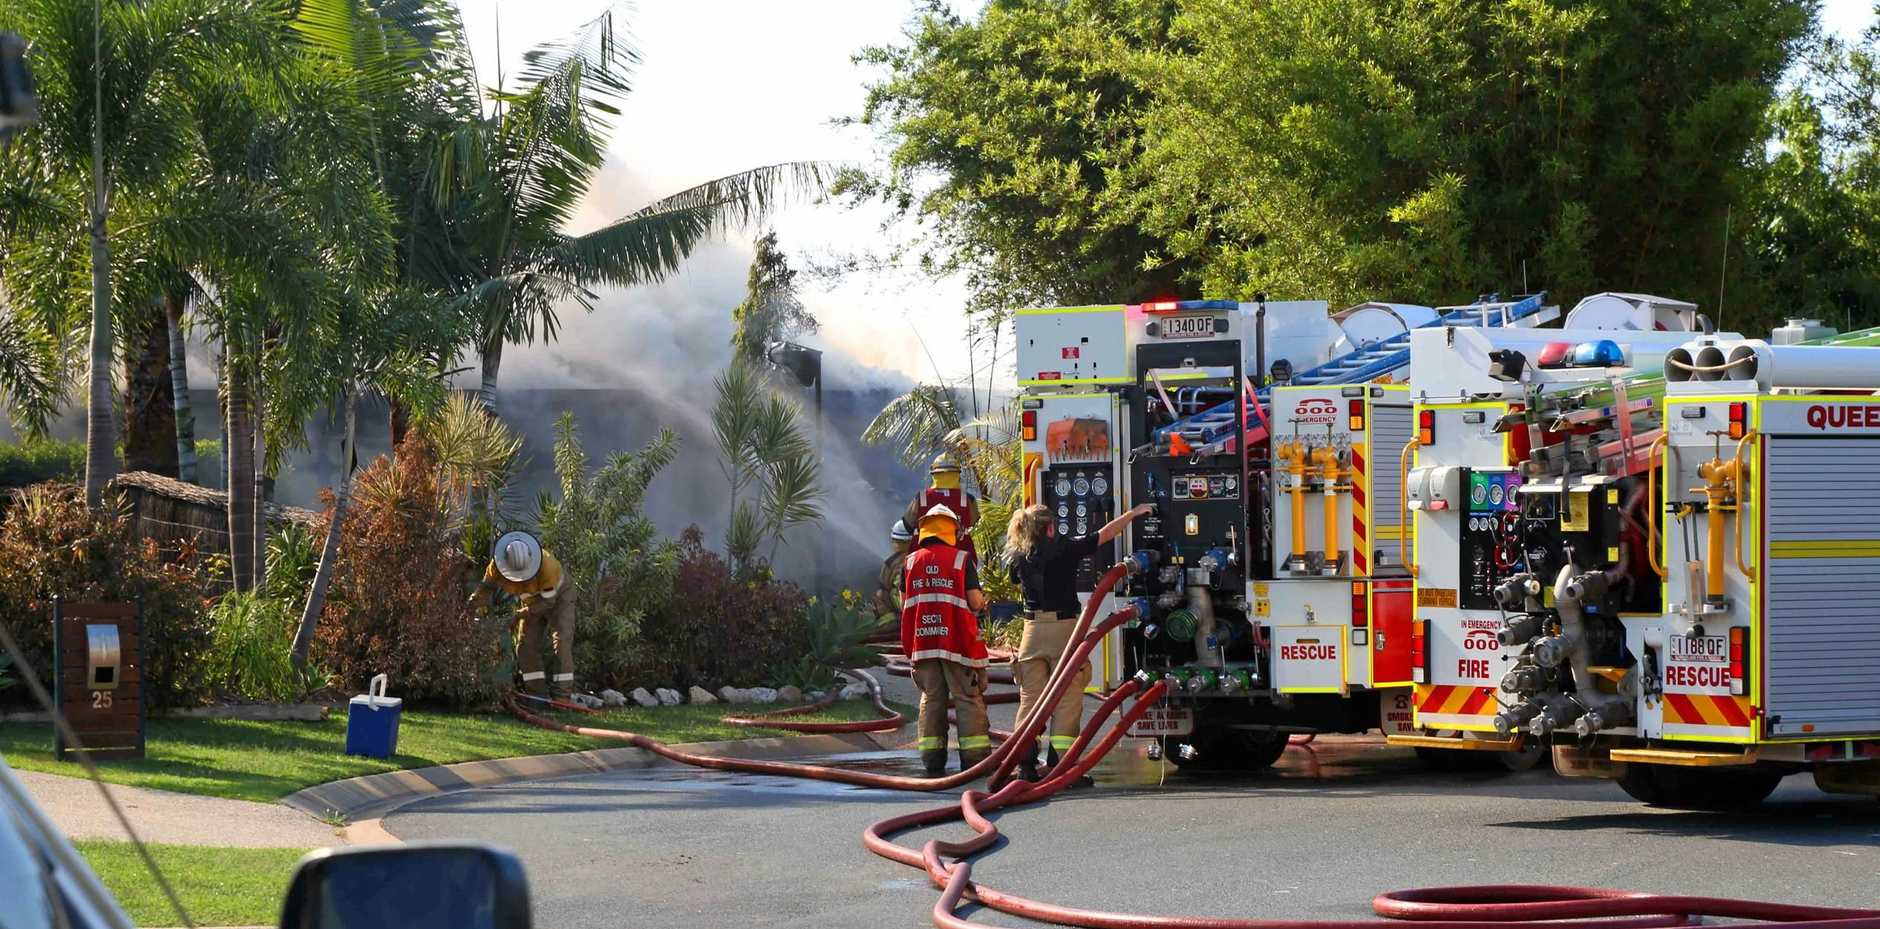 A house fire at Waite Creek Court last month has spurred a push for quicker fire response times.